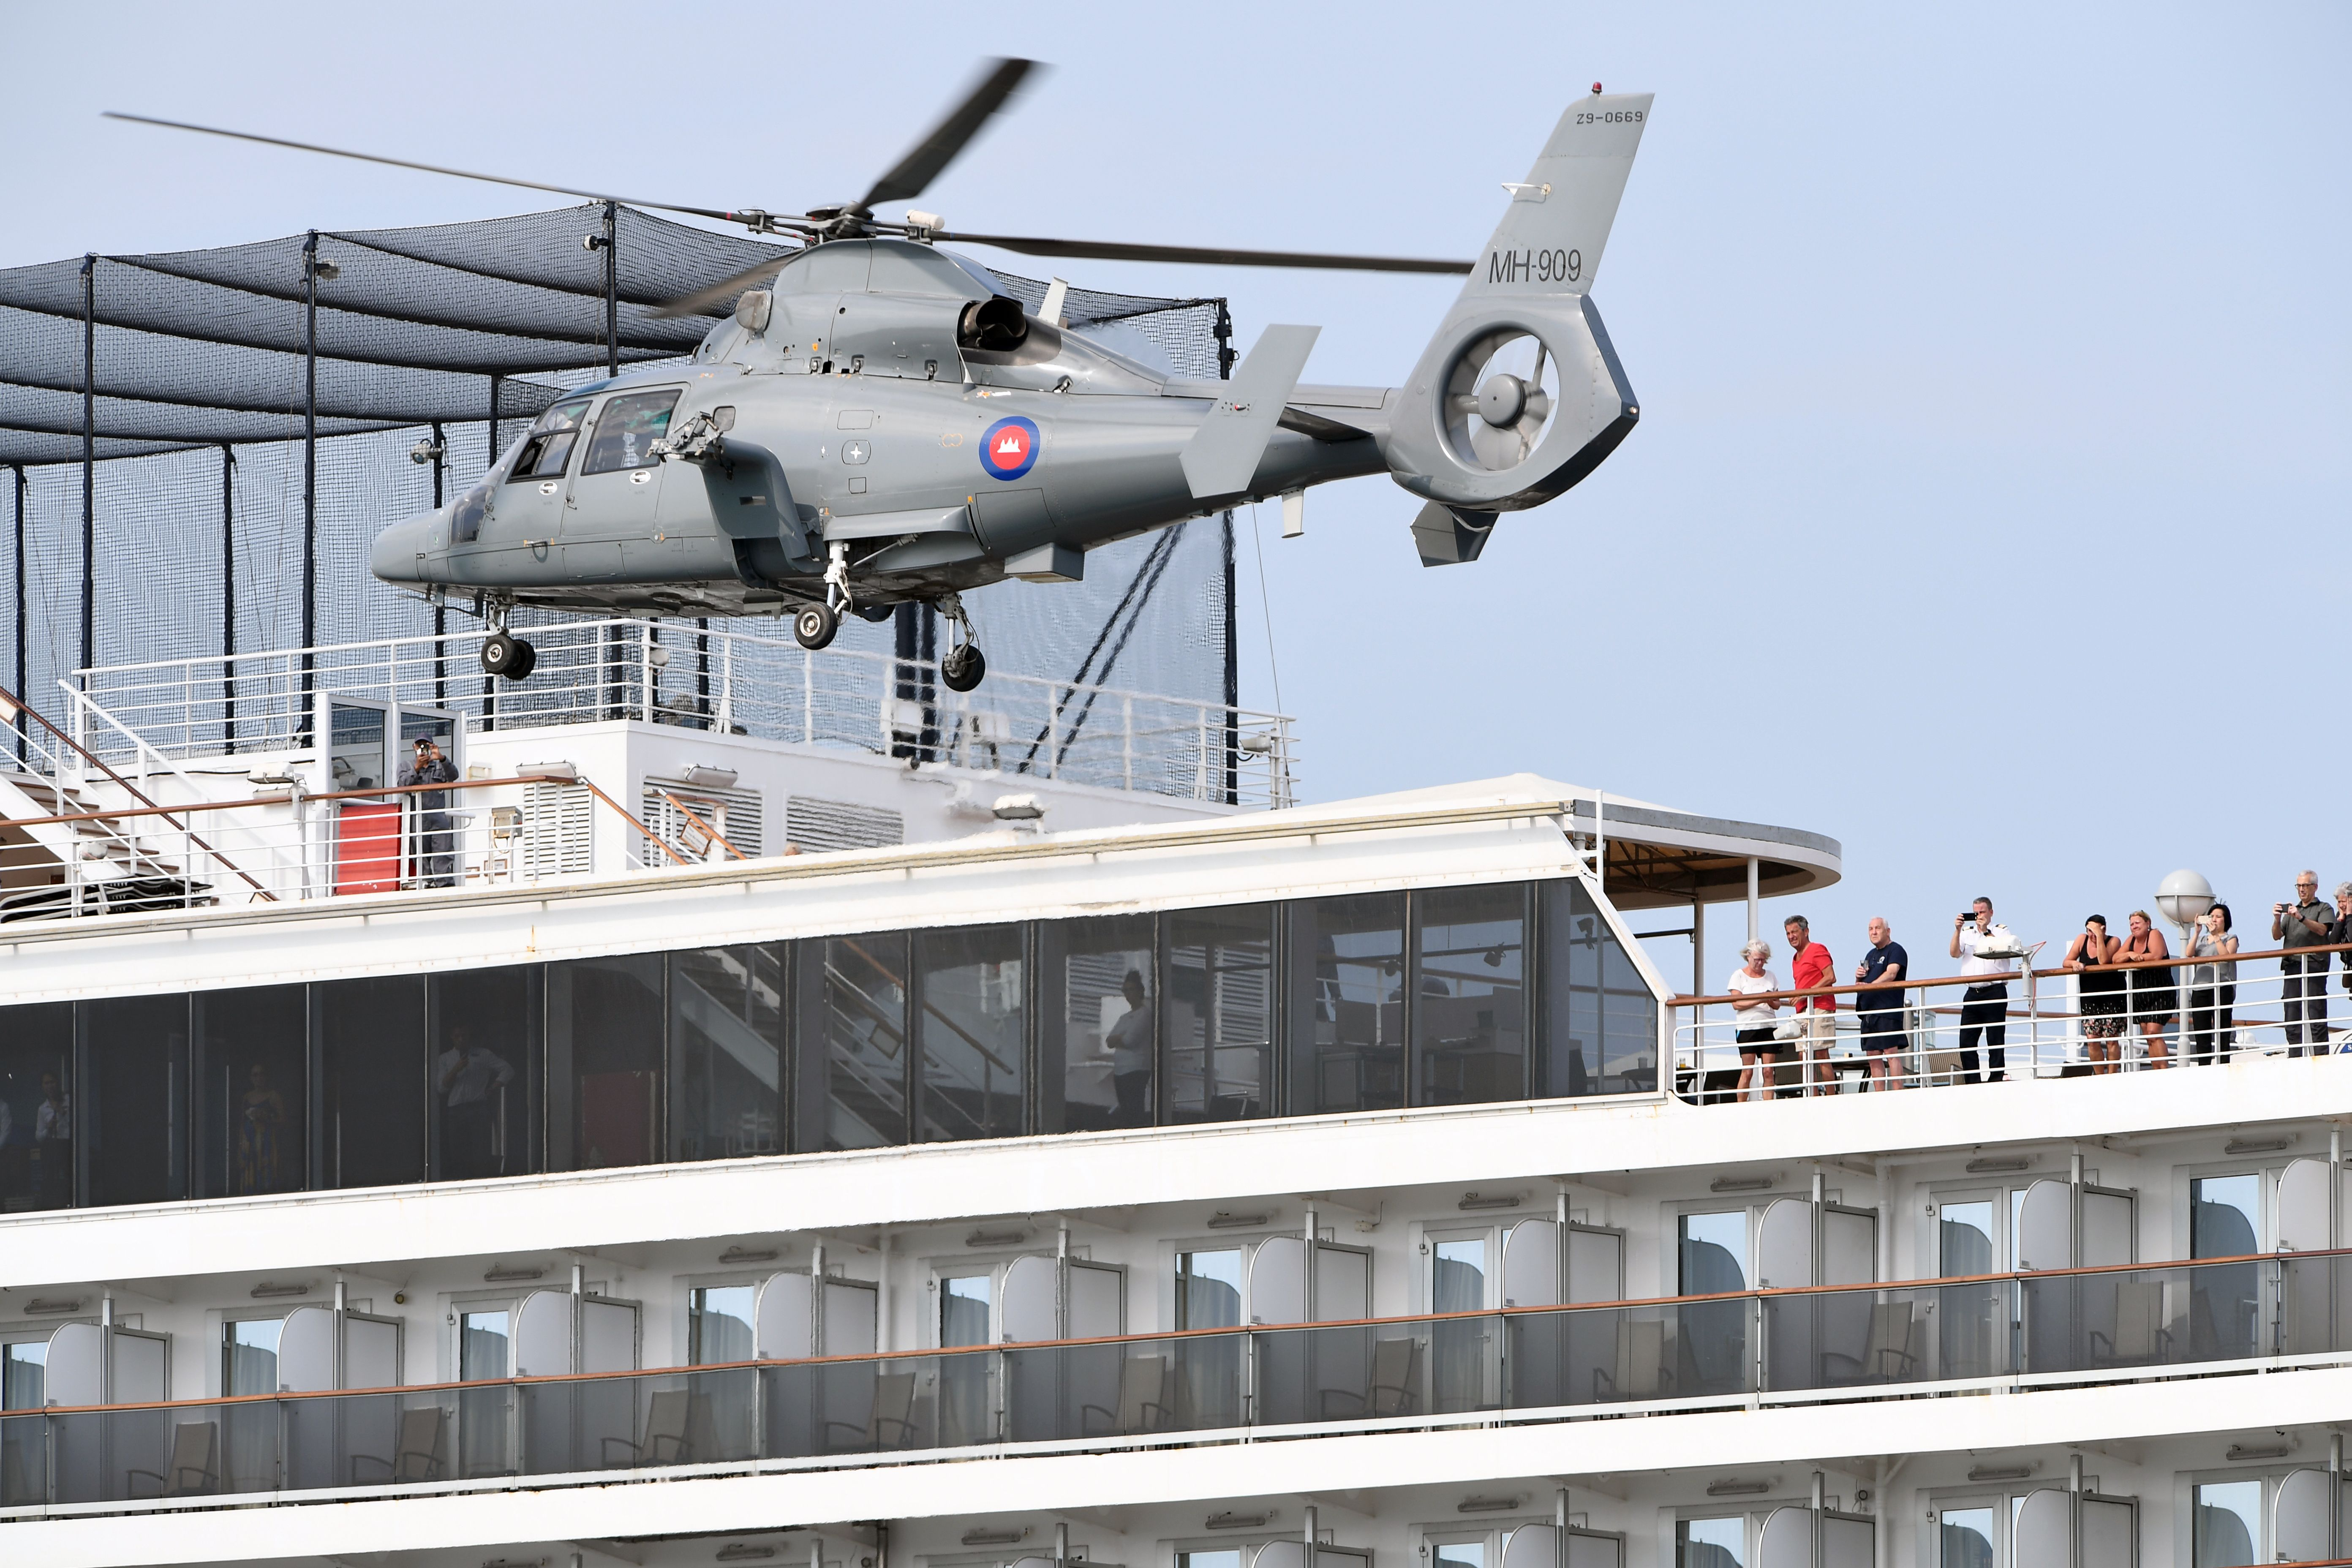 People on a deck of the Westerdam cruise ship watch a helicopter take off in Sihanoukville.